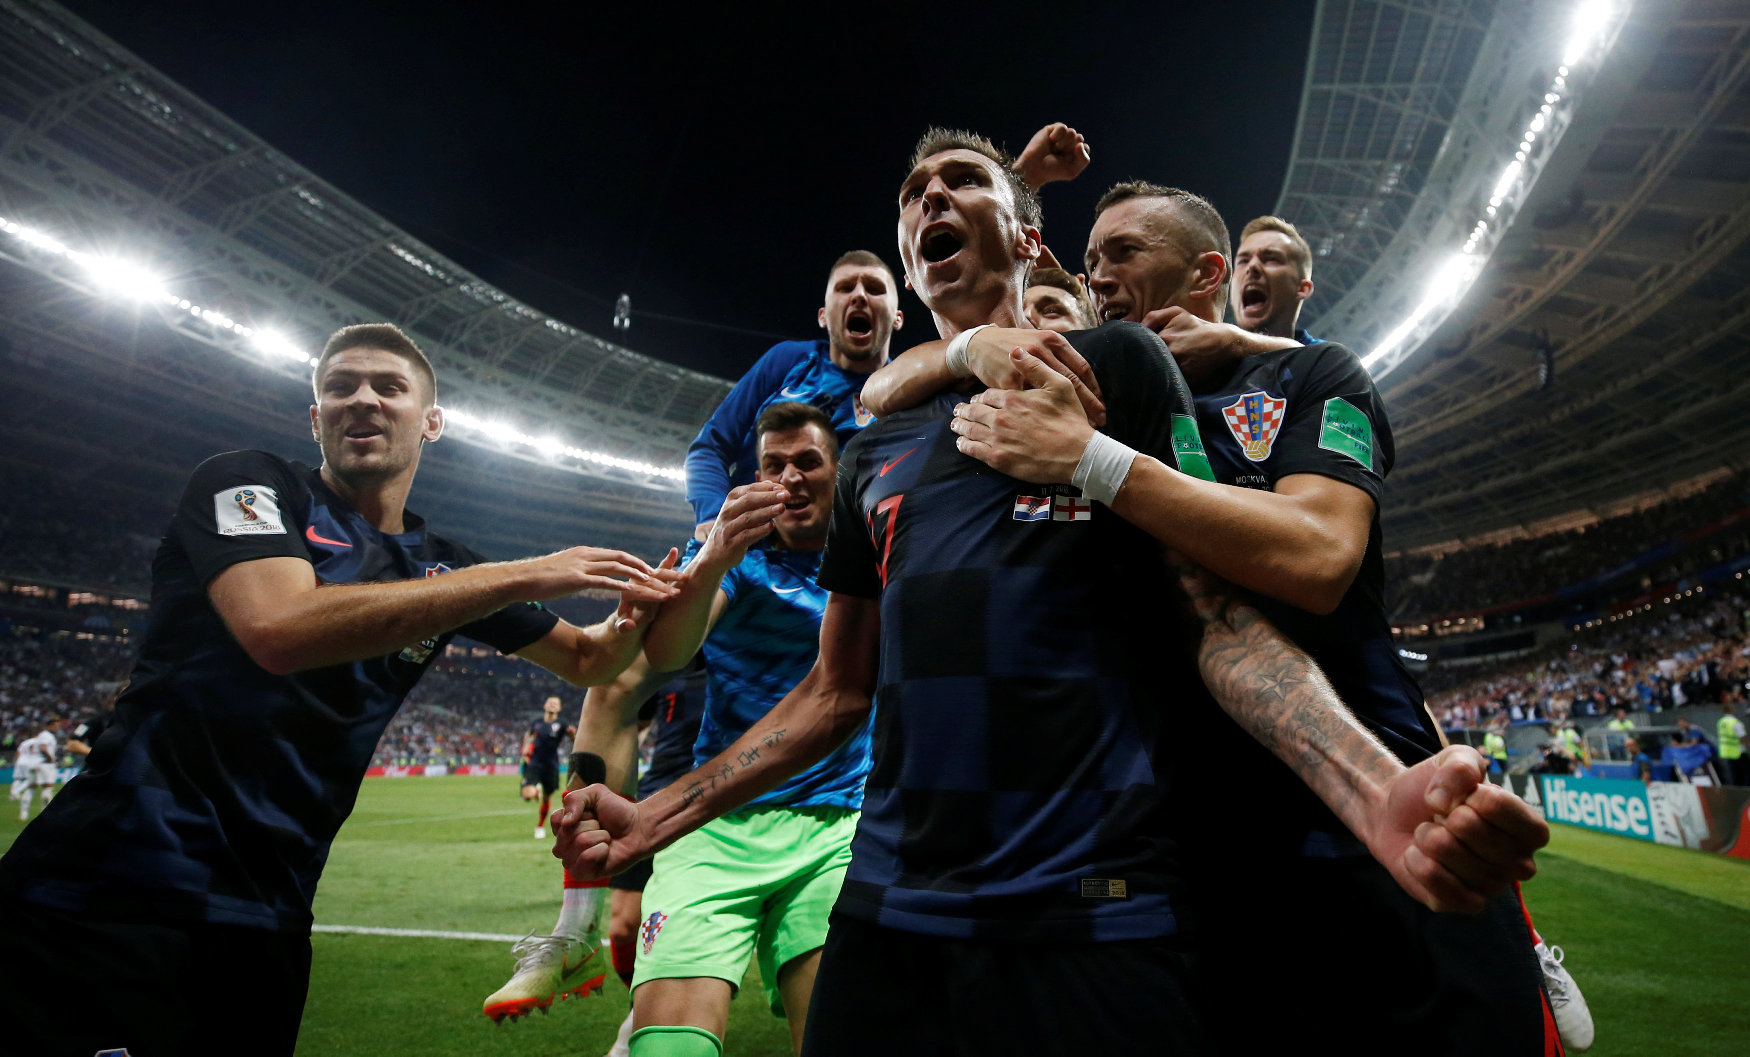 2018-07-11T202536Z_525566128_RC1653EF3520_RTRMADP_3_SOCCER-WORLDCUP-CRO-ENG